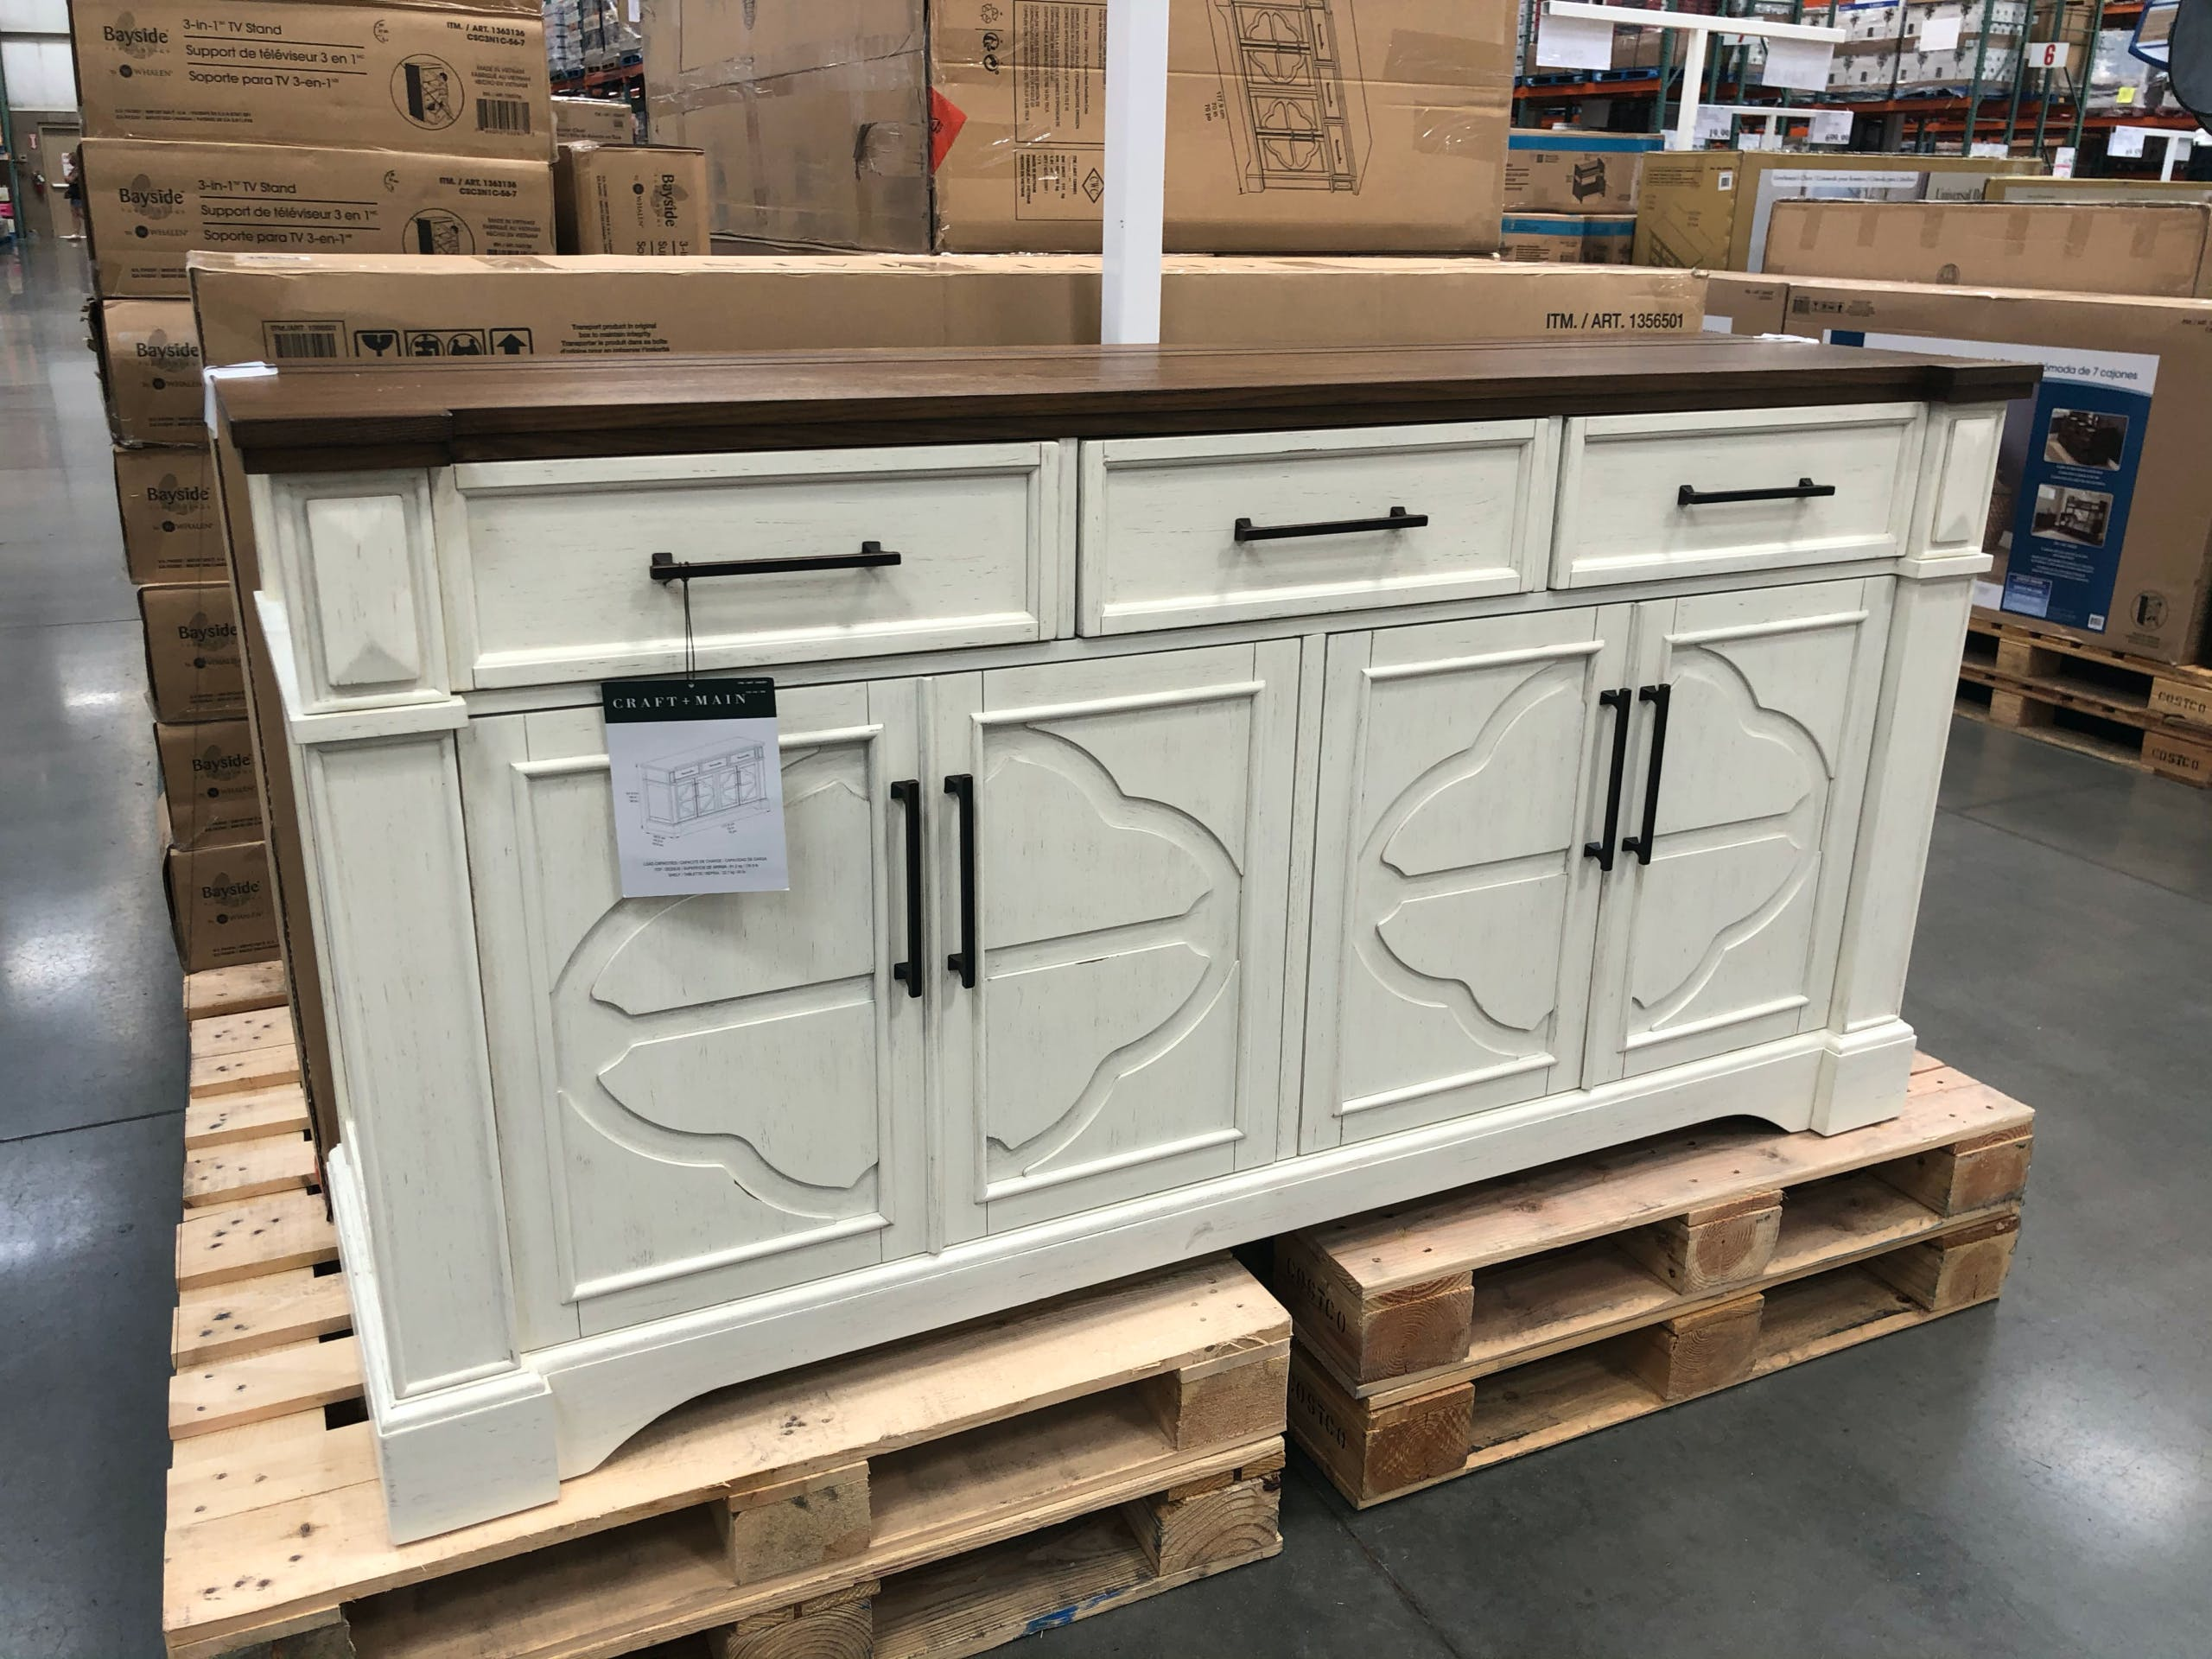 It S Furniture Month At Costco Save On Couches Consoles Beds More The Krazy Coupon Lady